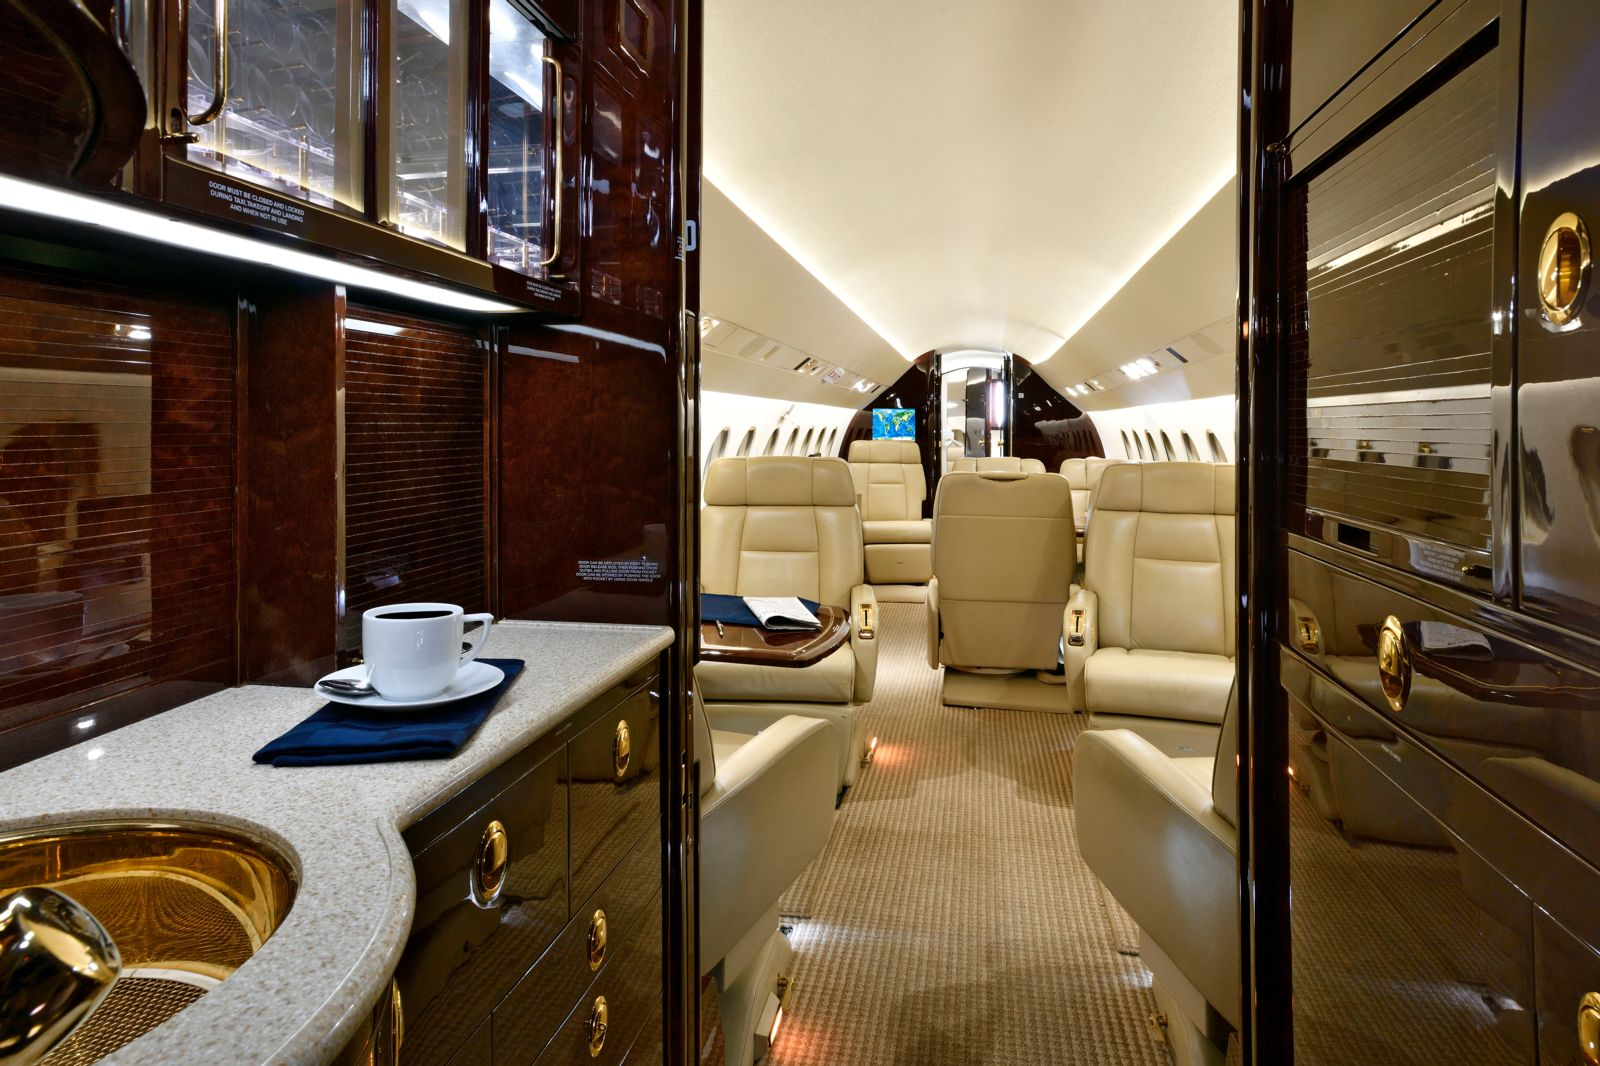 Dassault Falcon 900EX EASy  S/N 229 for sale | gallery image: /userfiles/images/F900EXy_sn229/fwd%20galley.jpg